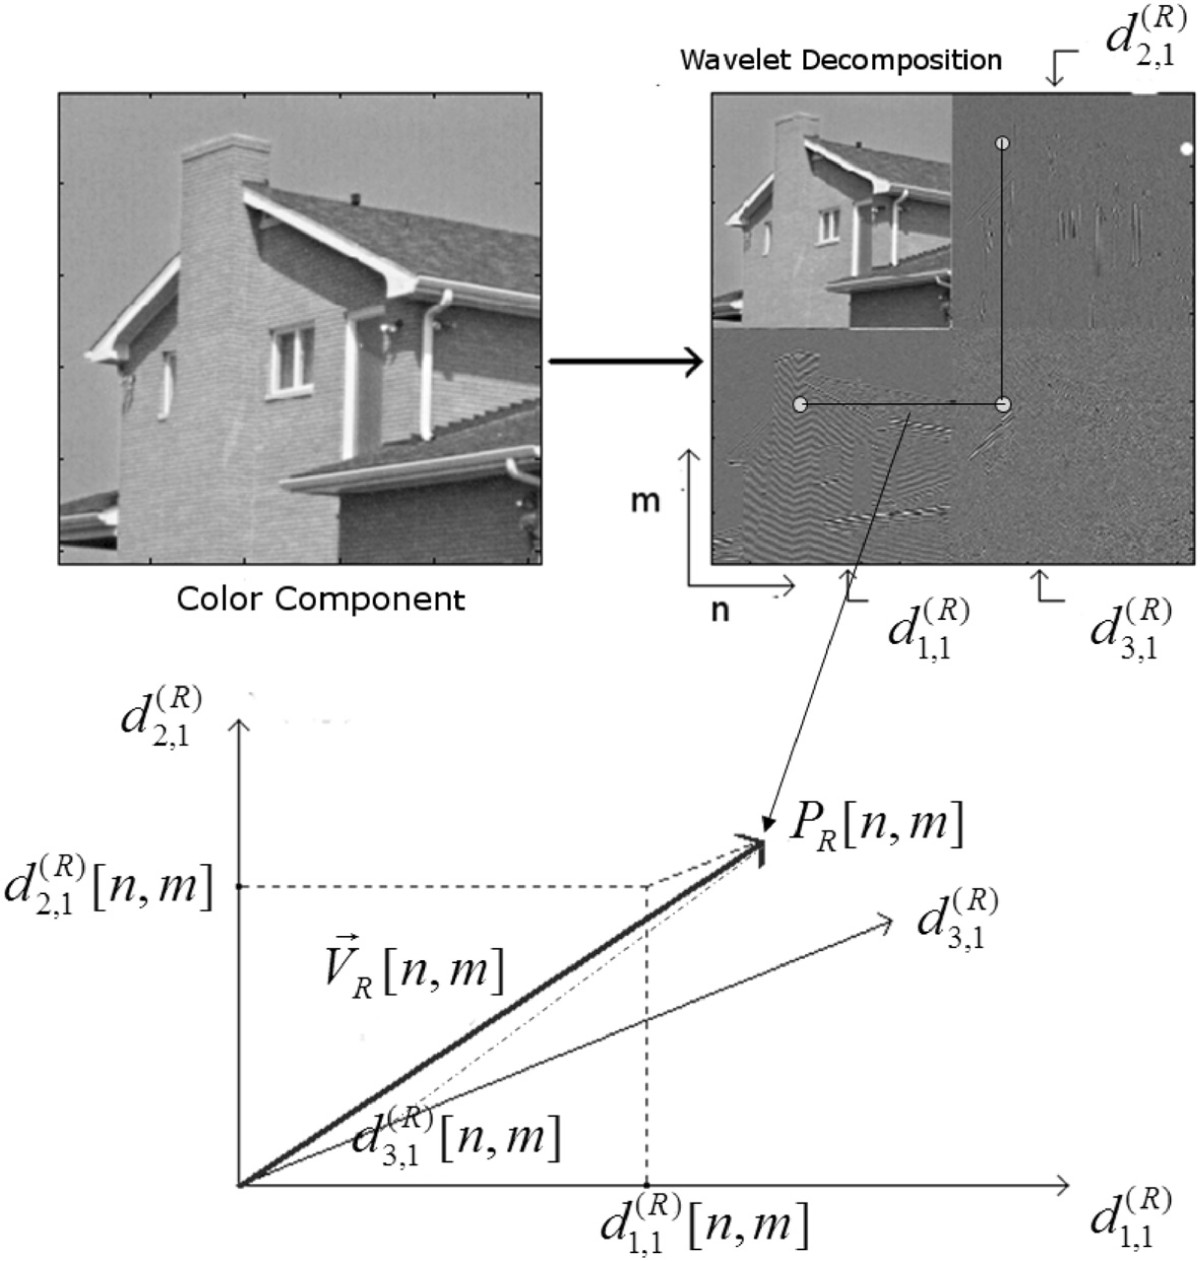 https://static-content.springer.com/image/art%3A10.1186%2F1687-417X-2013-1/MediaObjects/13635_2012_Article_10_Fig1_HTML.jpg